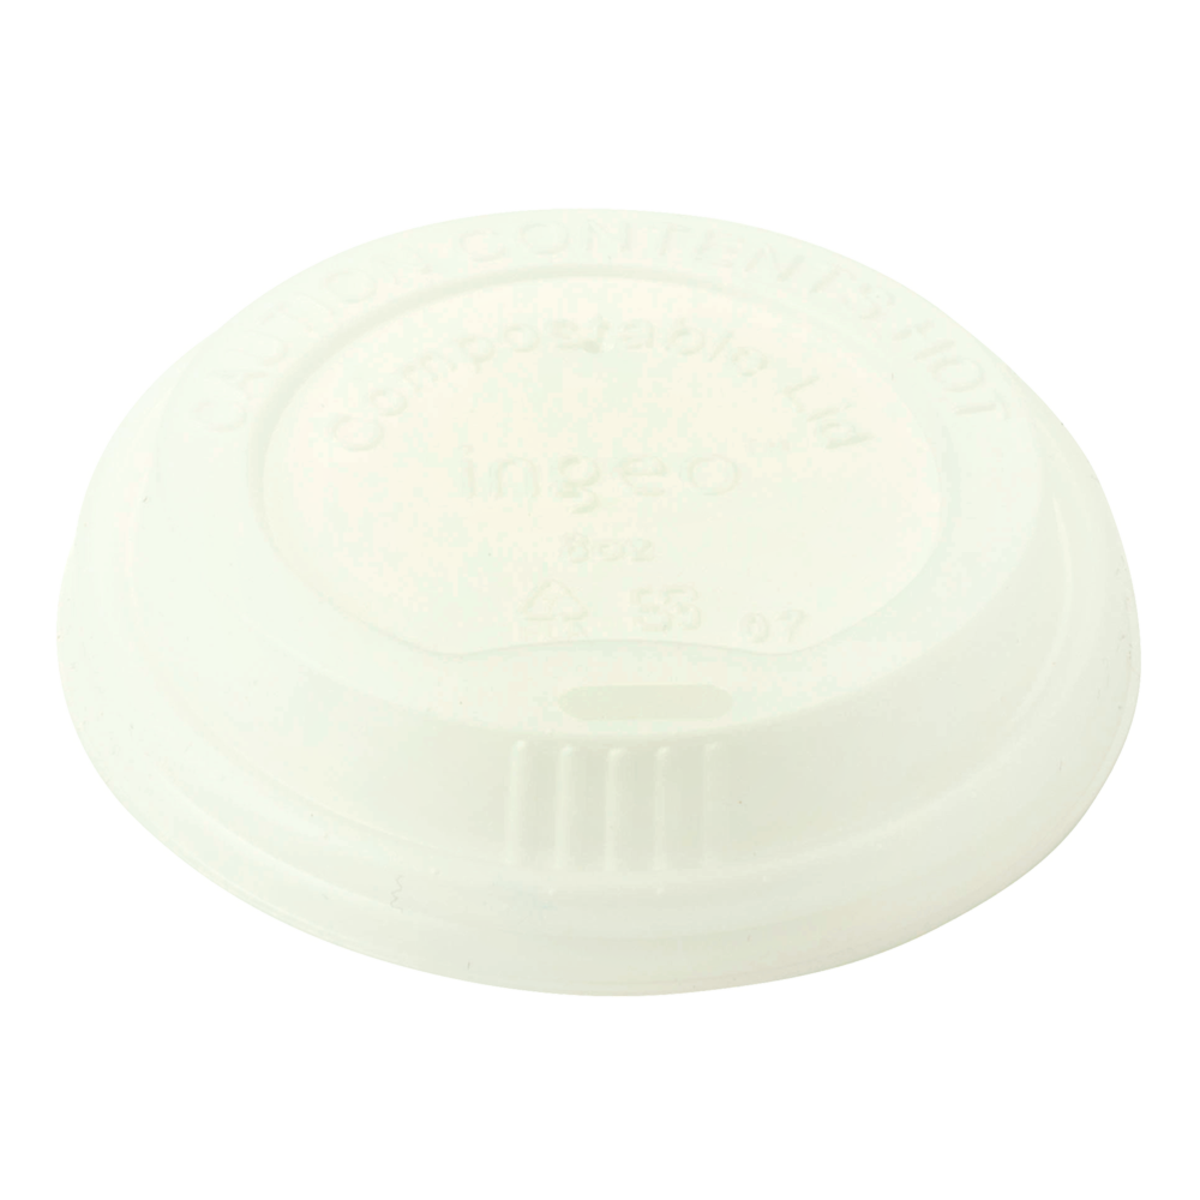 Case of 1000 Units or Pack of 50 Units of 10-20 oz Hot Cup Lids